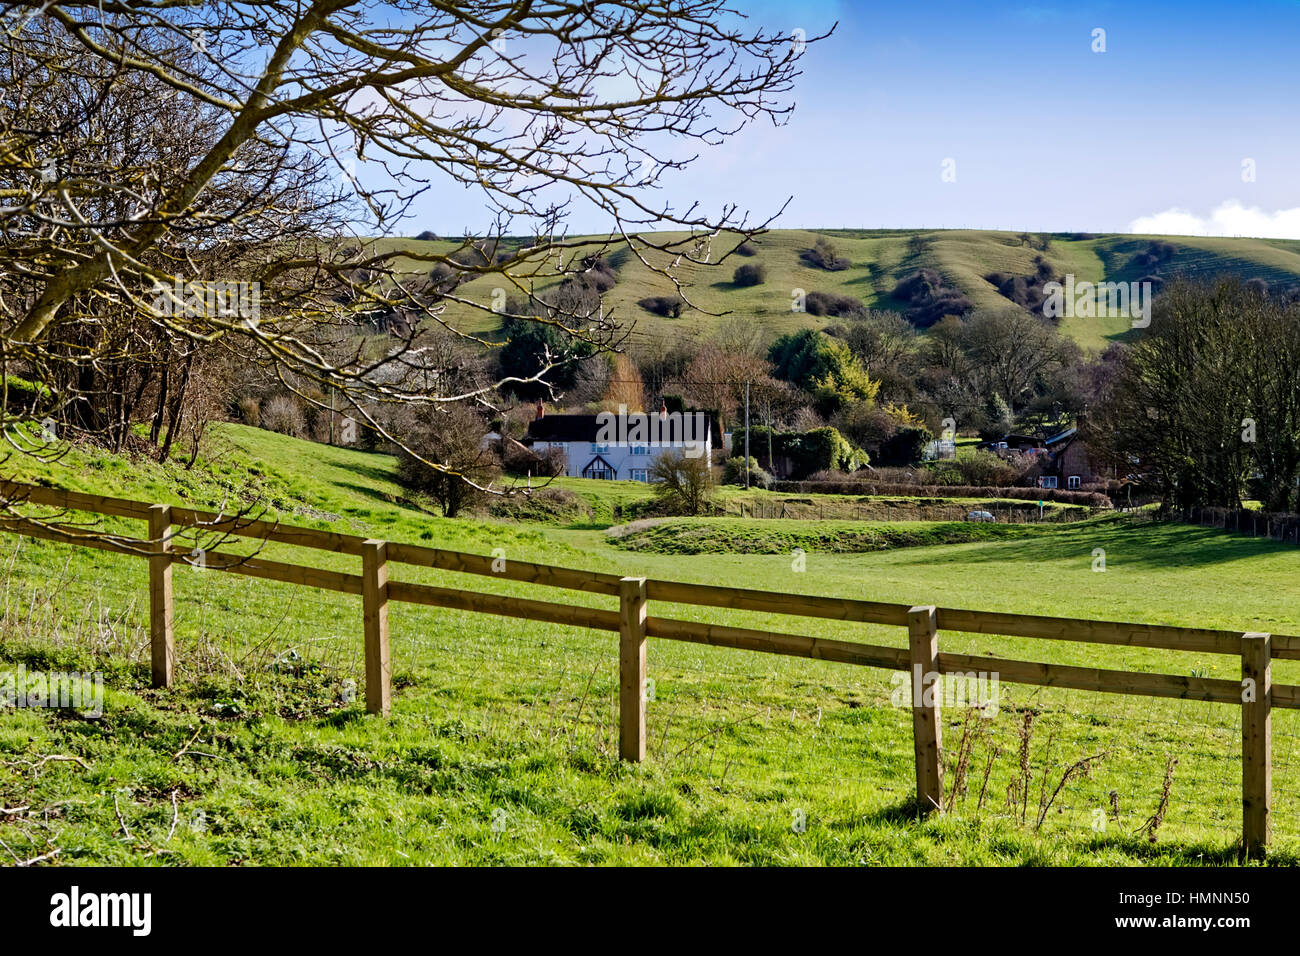 Cottages in the village of Edington, Wiltshire, United Kingdom. Stock Photo